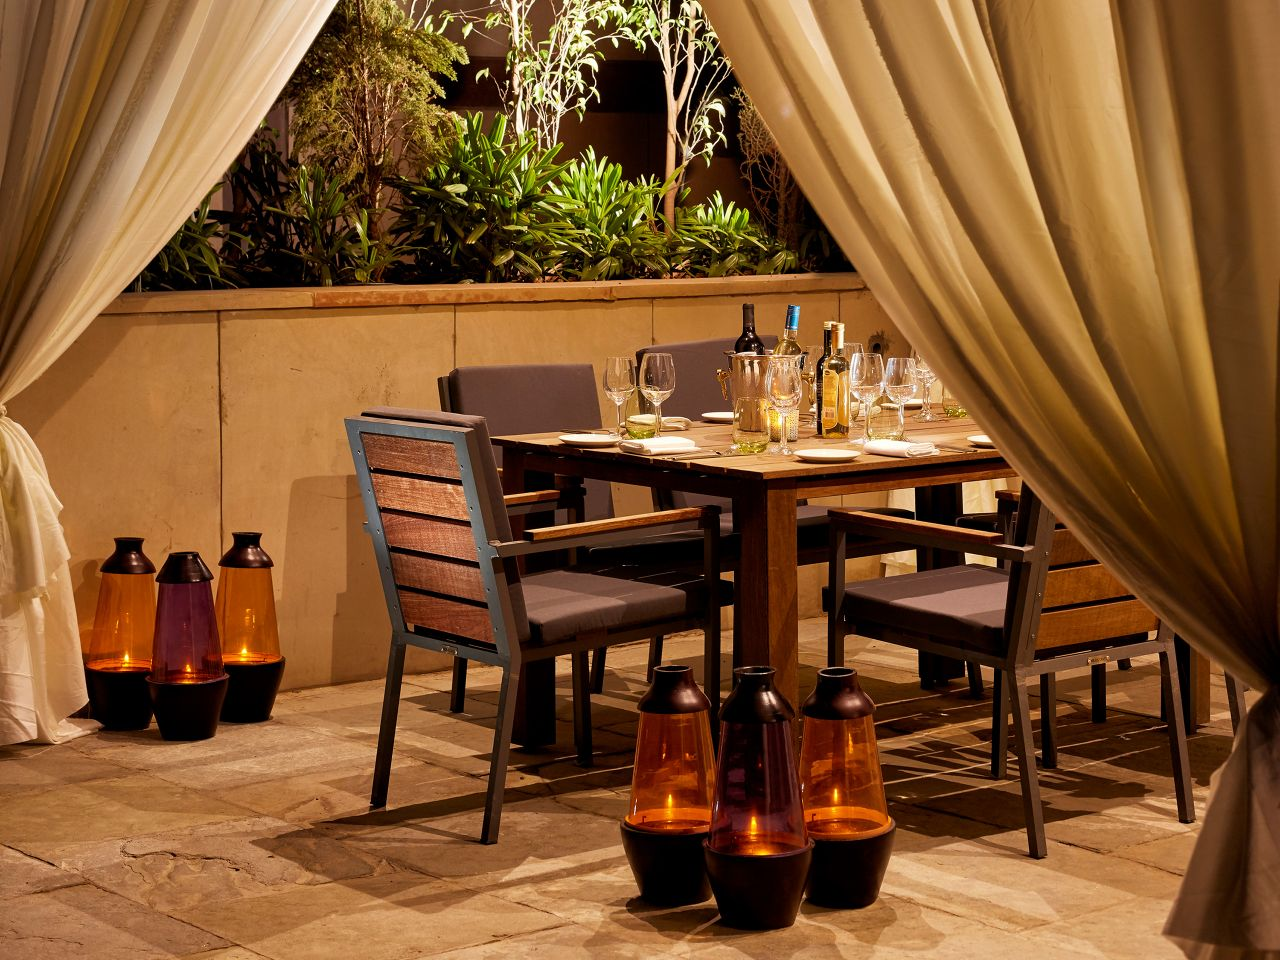 Dining table on restaurant outdoor patio